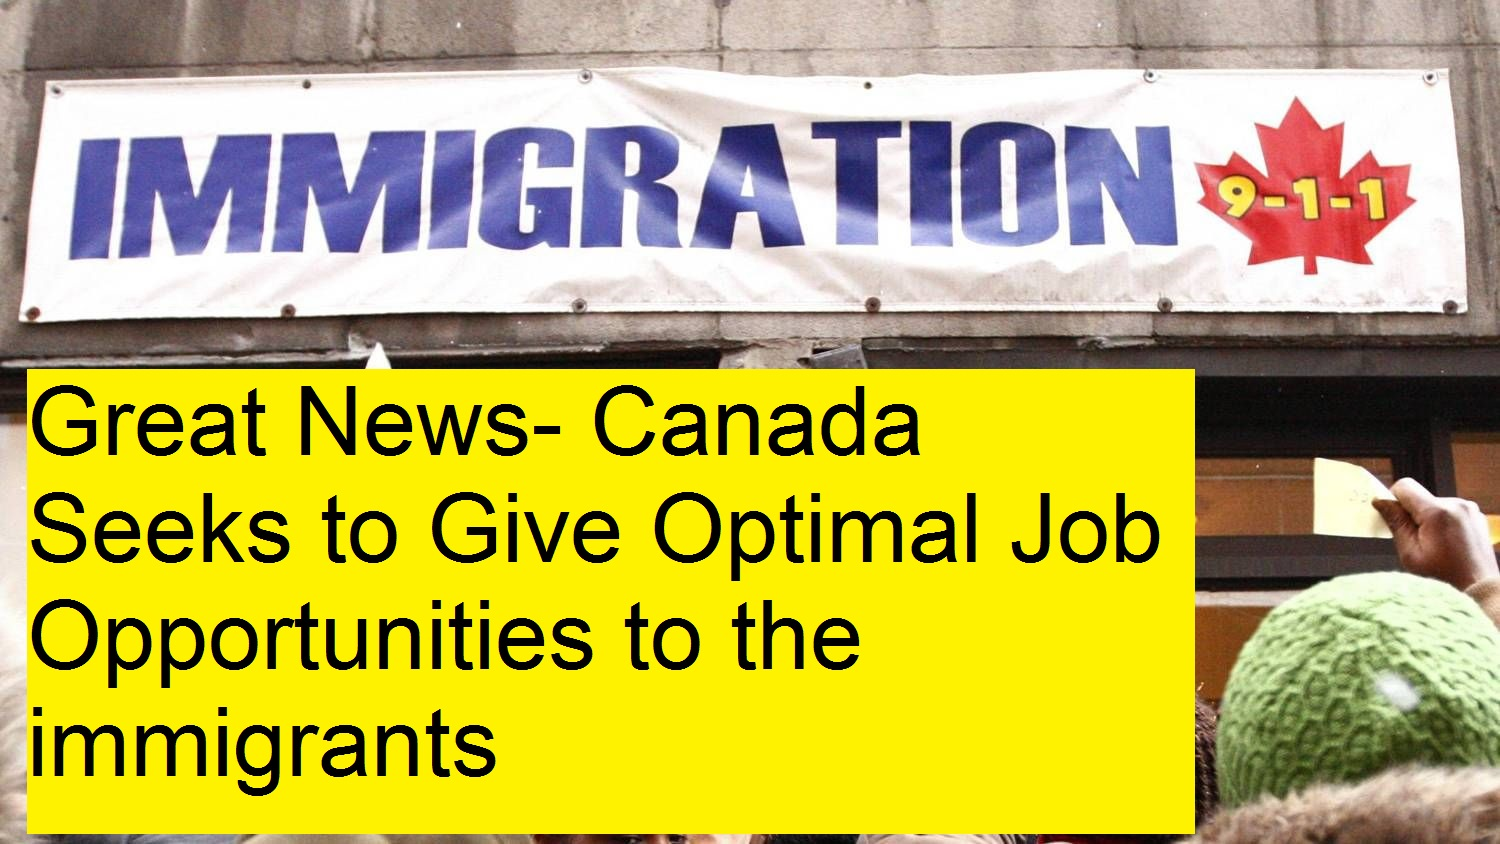 Canada Seeks to Give Optimal Job Opportunities